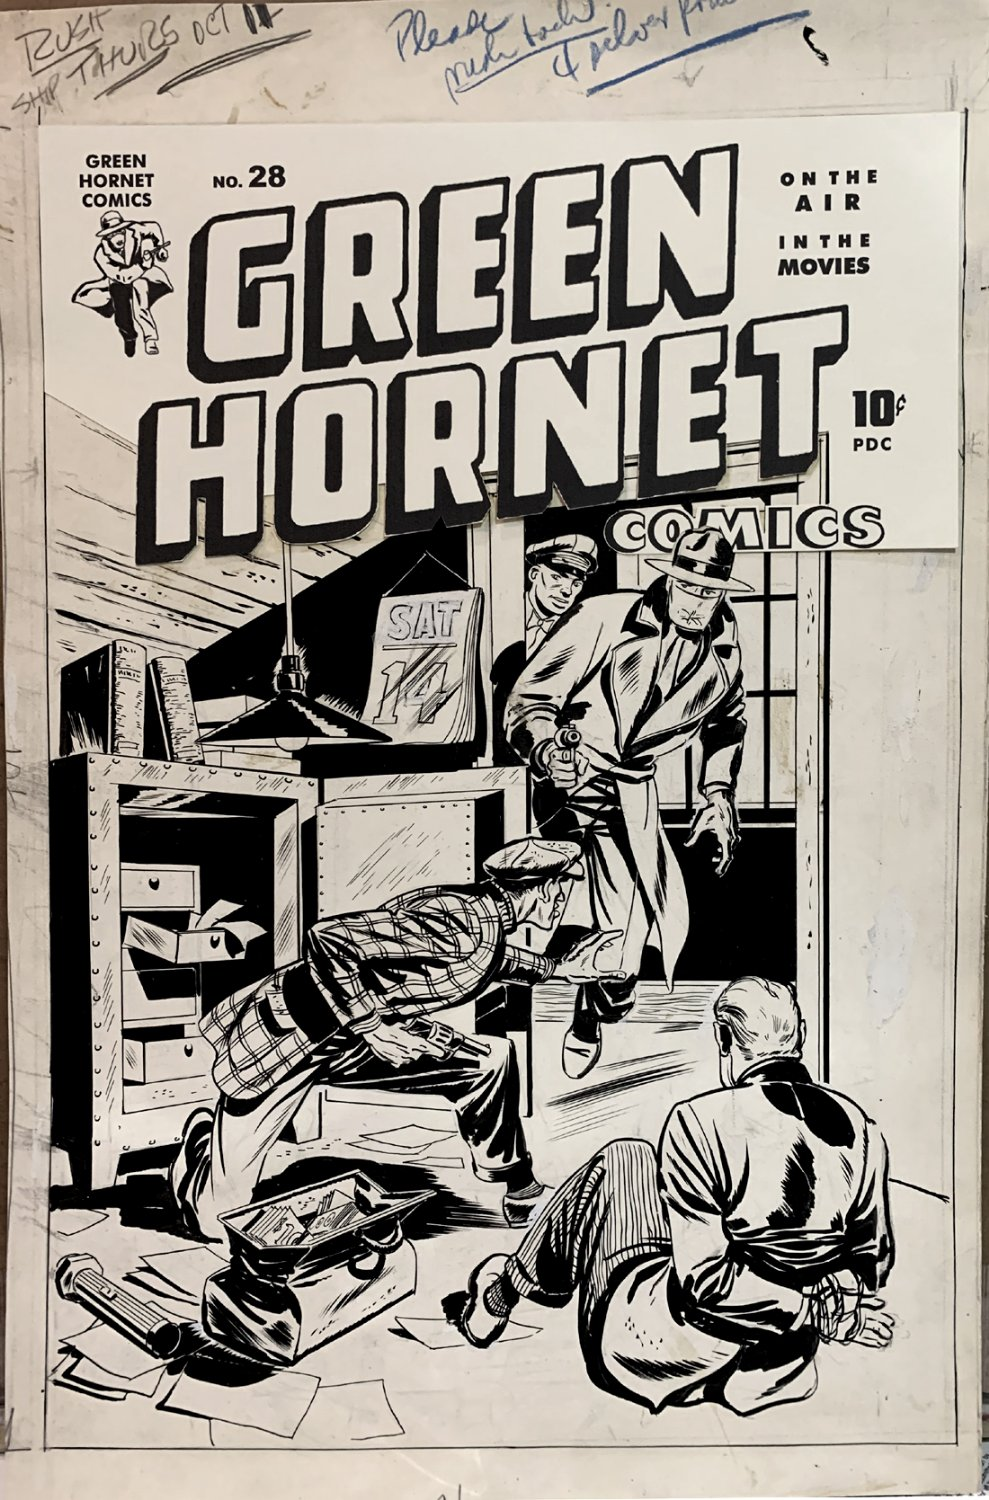 Green Hornet Comics #28 Golden Age (JERRY ROBINSON) Cover - Large Art 1945